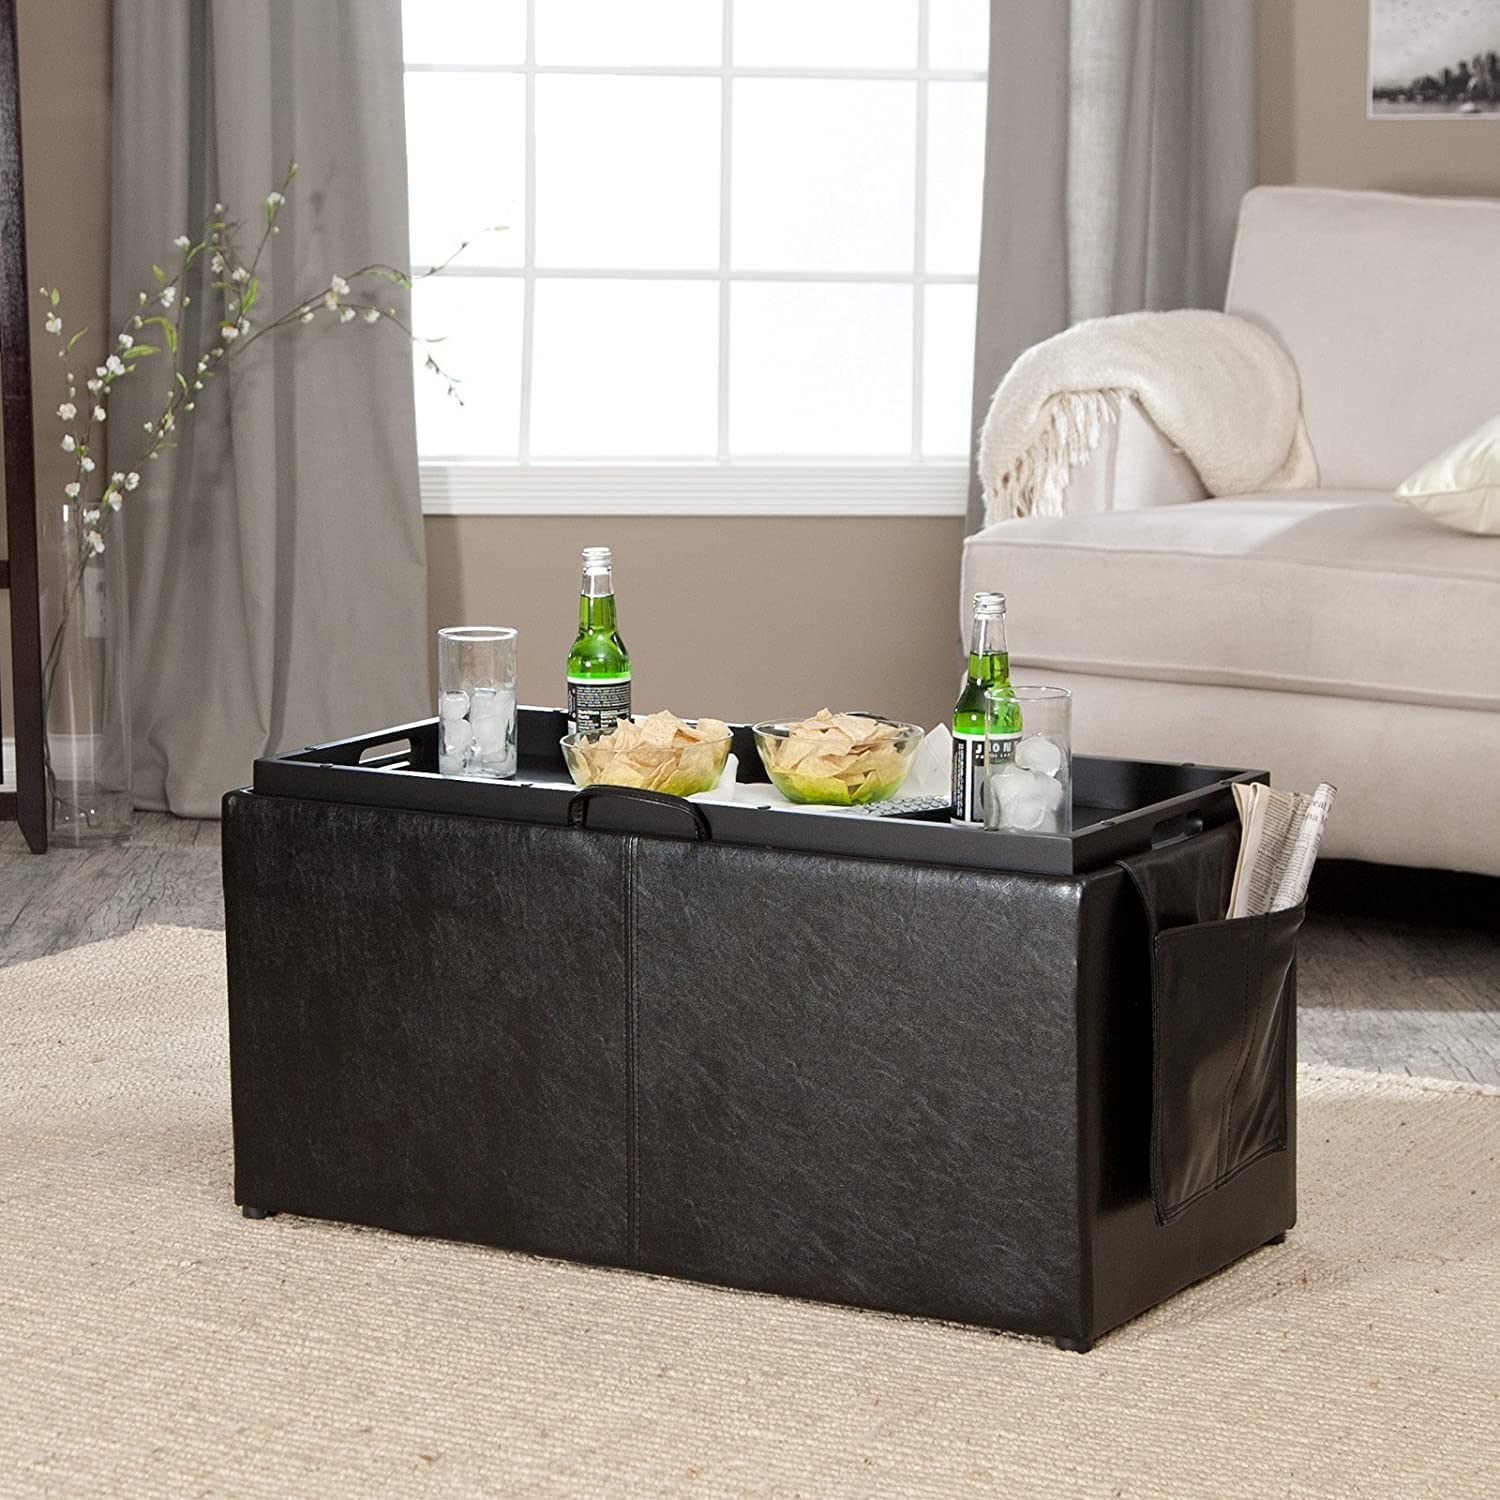 Amazon Hartley Coffee Table Storage Ottoman with Tray Side